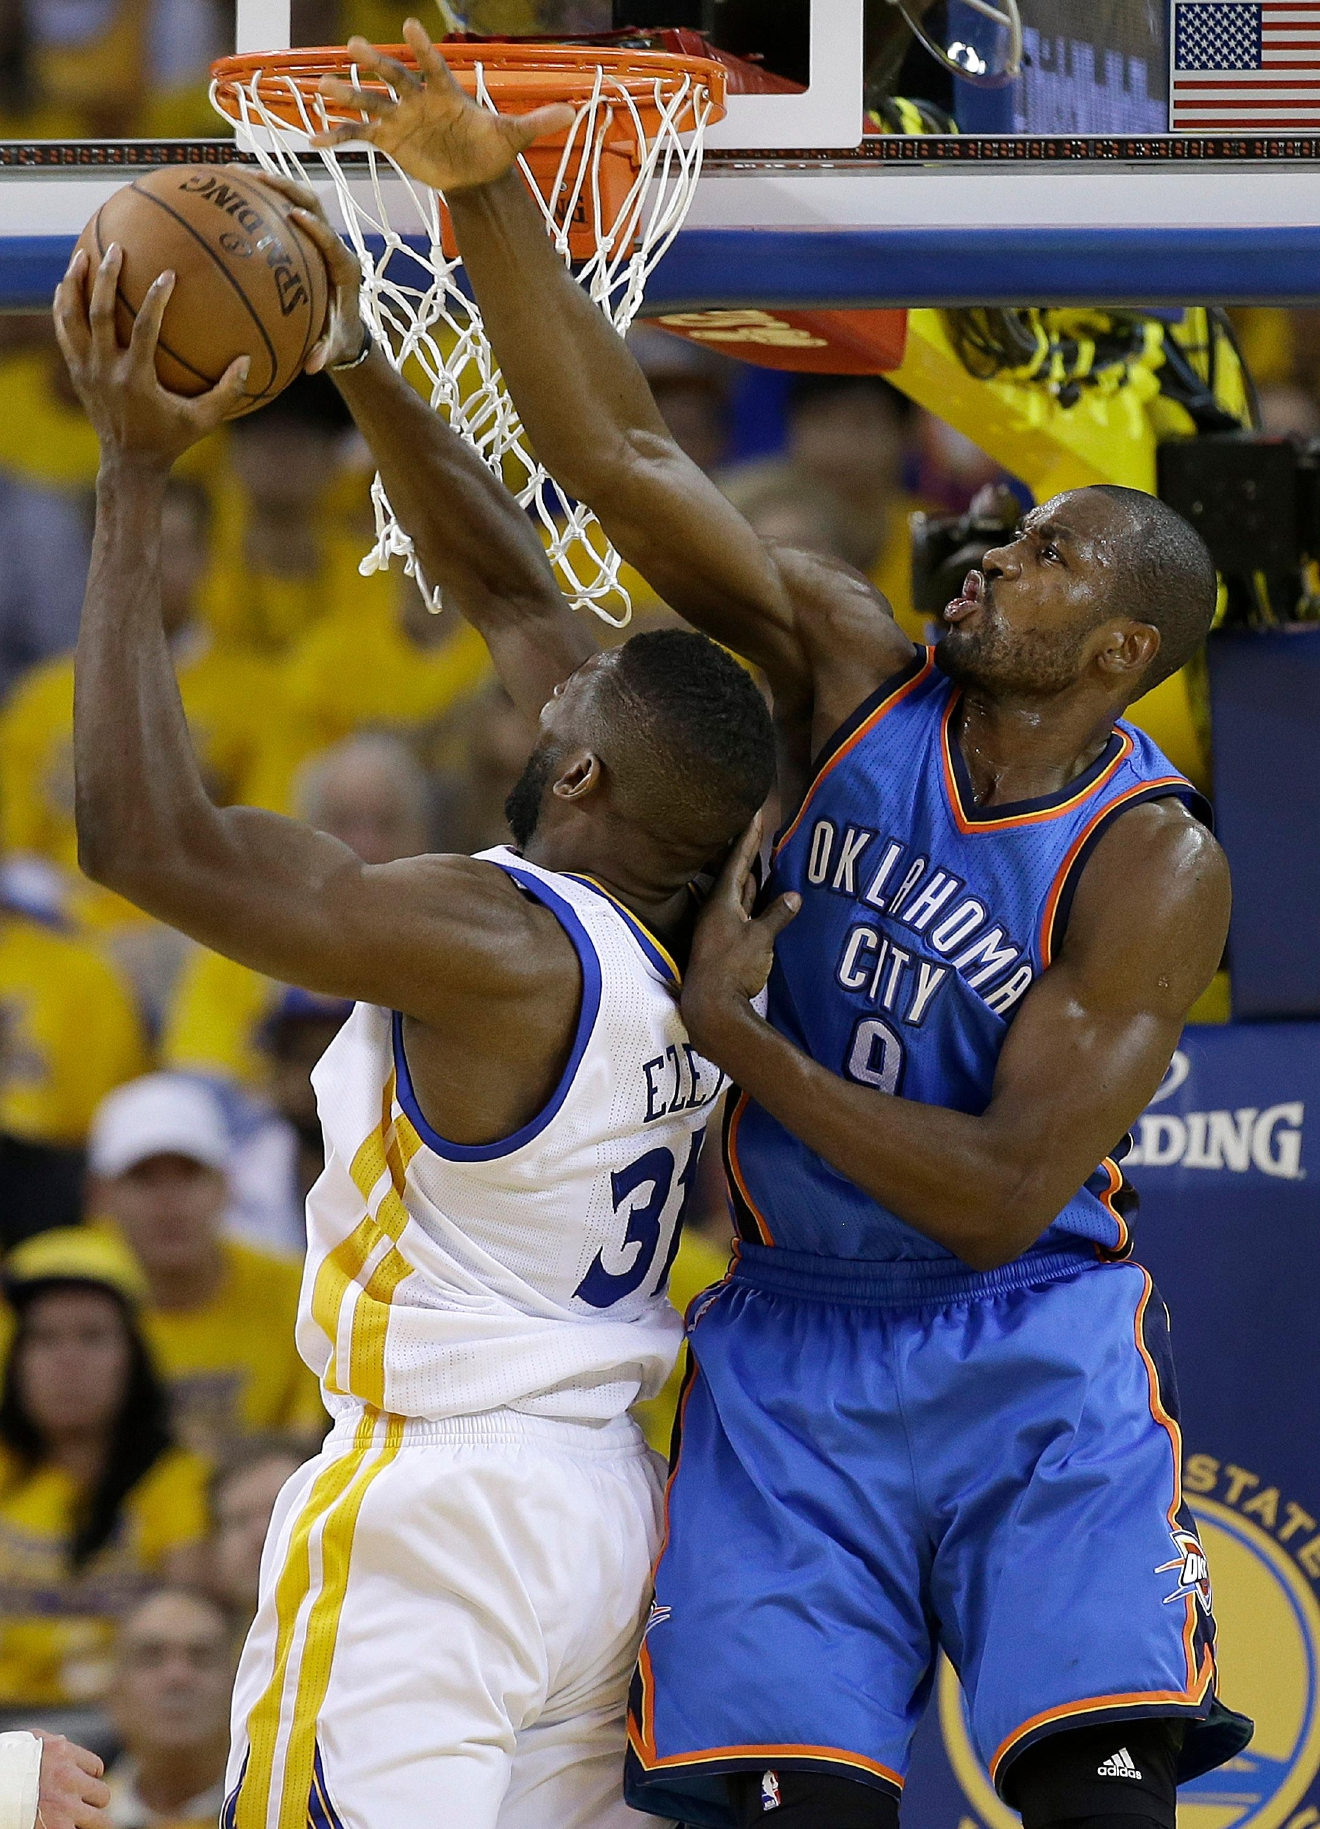 Golden State Warriors center Festus Ezeli (31) shoots against Oklahoma City Thunder forward Serge Ibaka (9) during the first half of Game 2 of the NBA basketball Western Conference finals in Oakland, Calif., Wednesday, May 18, 2016. (AP Photo/Marcio Jose Sanchez)